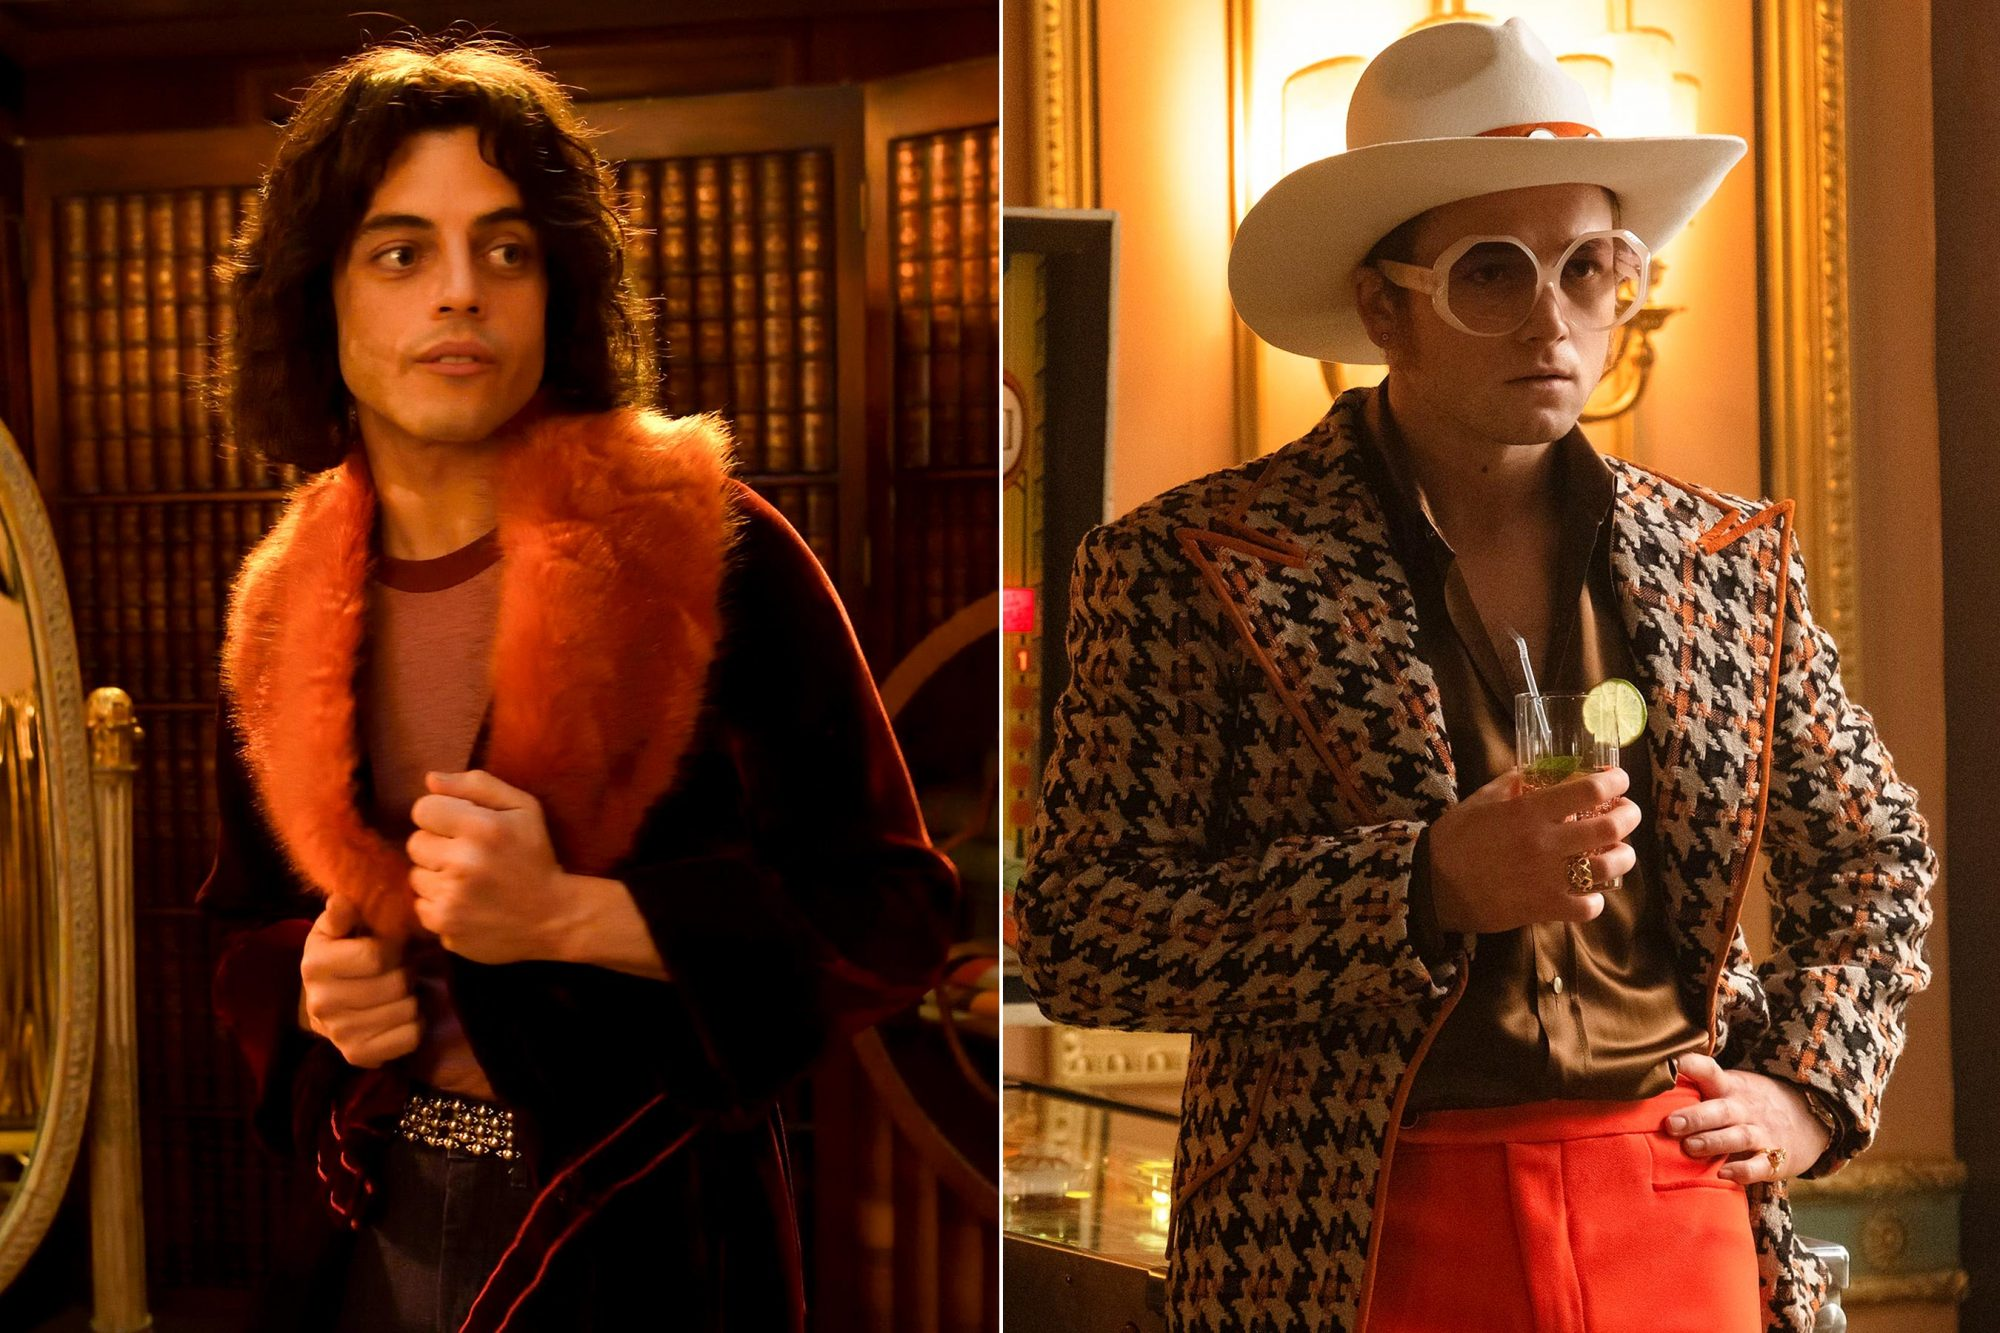 Bohemian Rhapsody Pictured: Rami Malek CR: Alex Bailey/Fox Taron Egerton as Elton John in Rocketman from Paramount Pictures. CR: David Appleby/Paramount Pictures